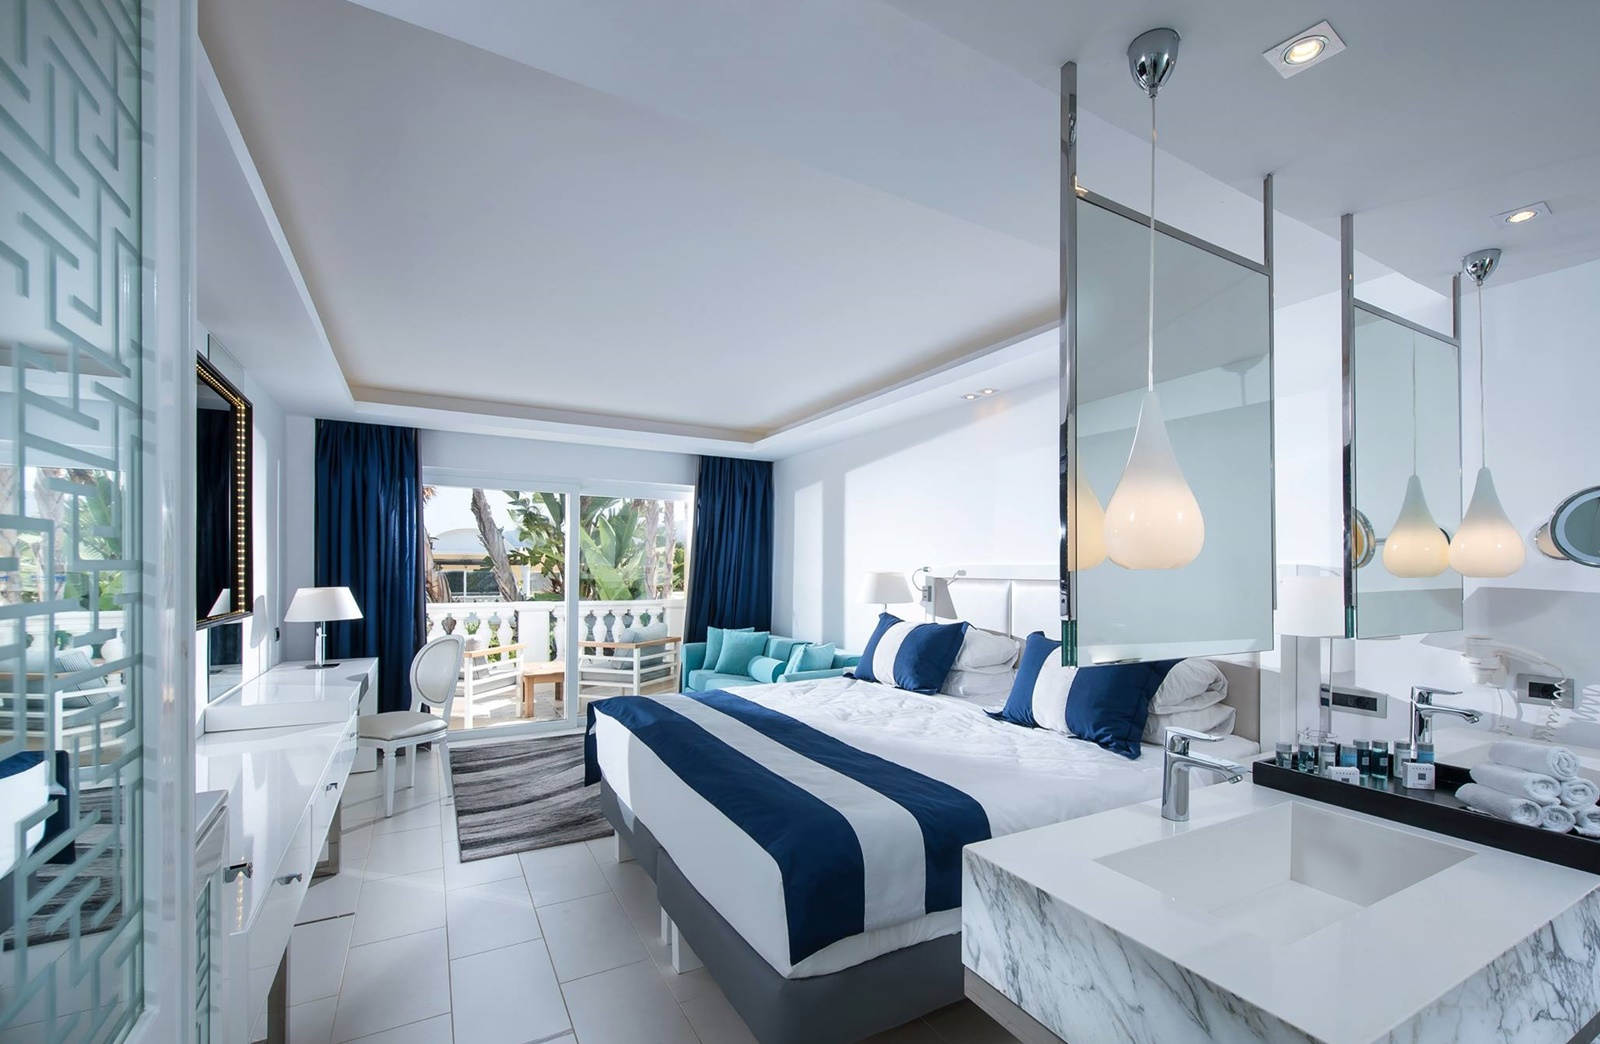 Hotel Met Prive Zwembad Bonaire Hotel Radisson Blue Beach Resort - Milatos - Kreta